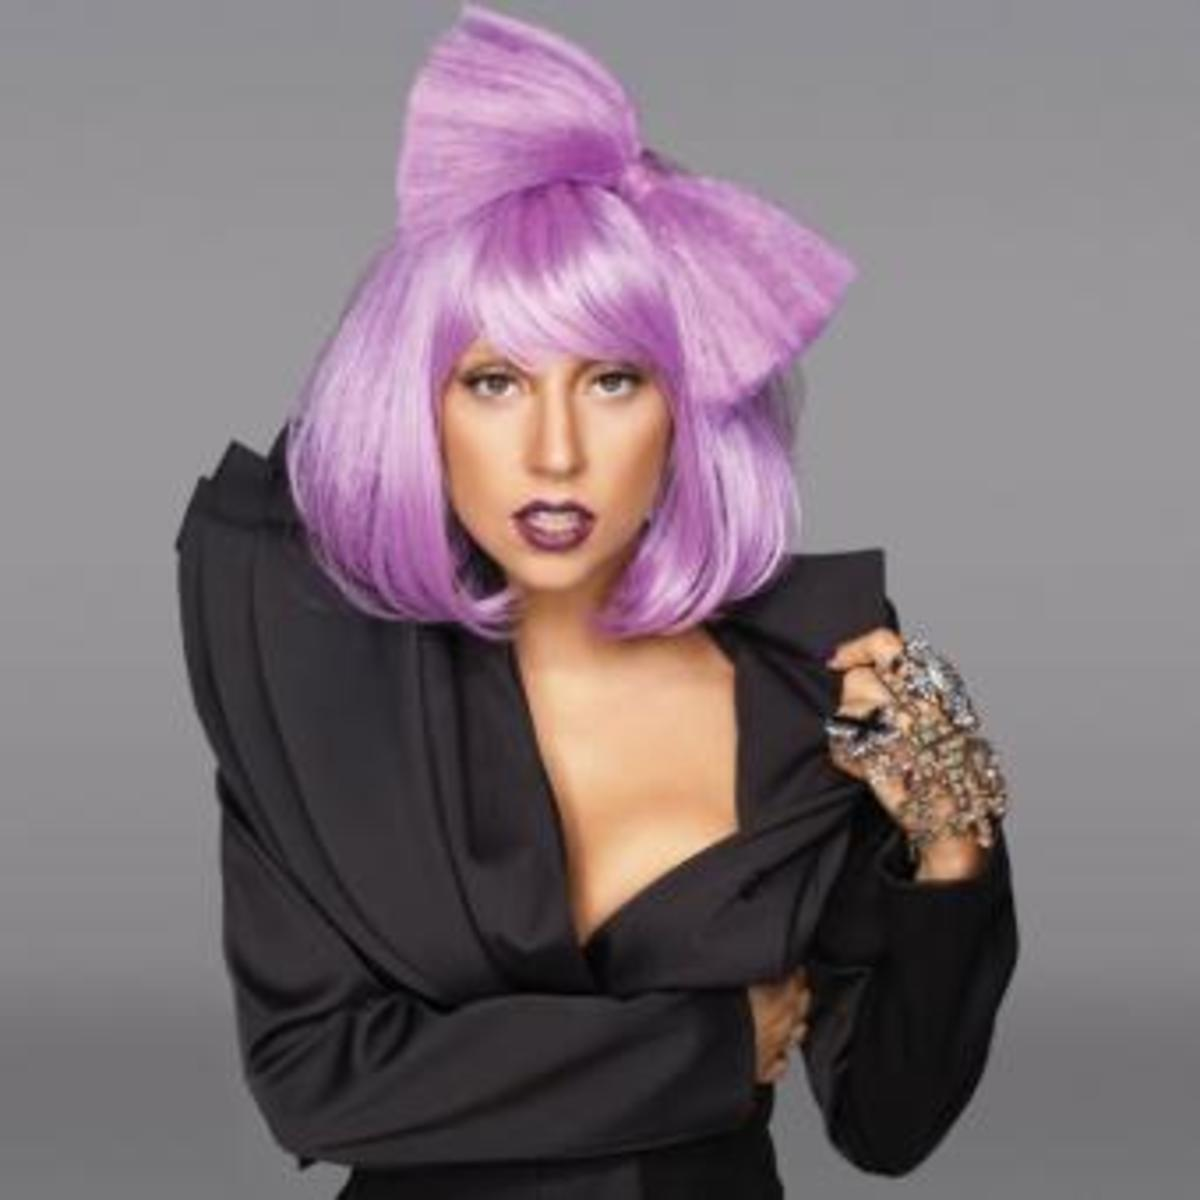 Lady Gaga with purple hair. Wig of bowtie made out of hair. Fun hair color.